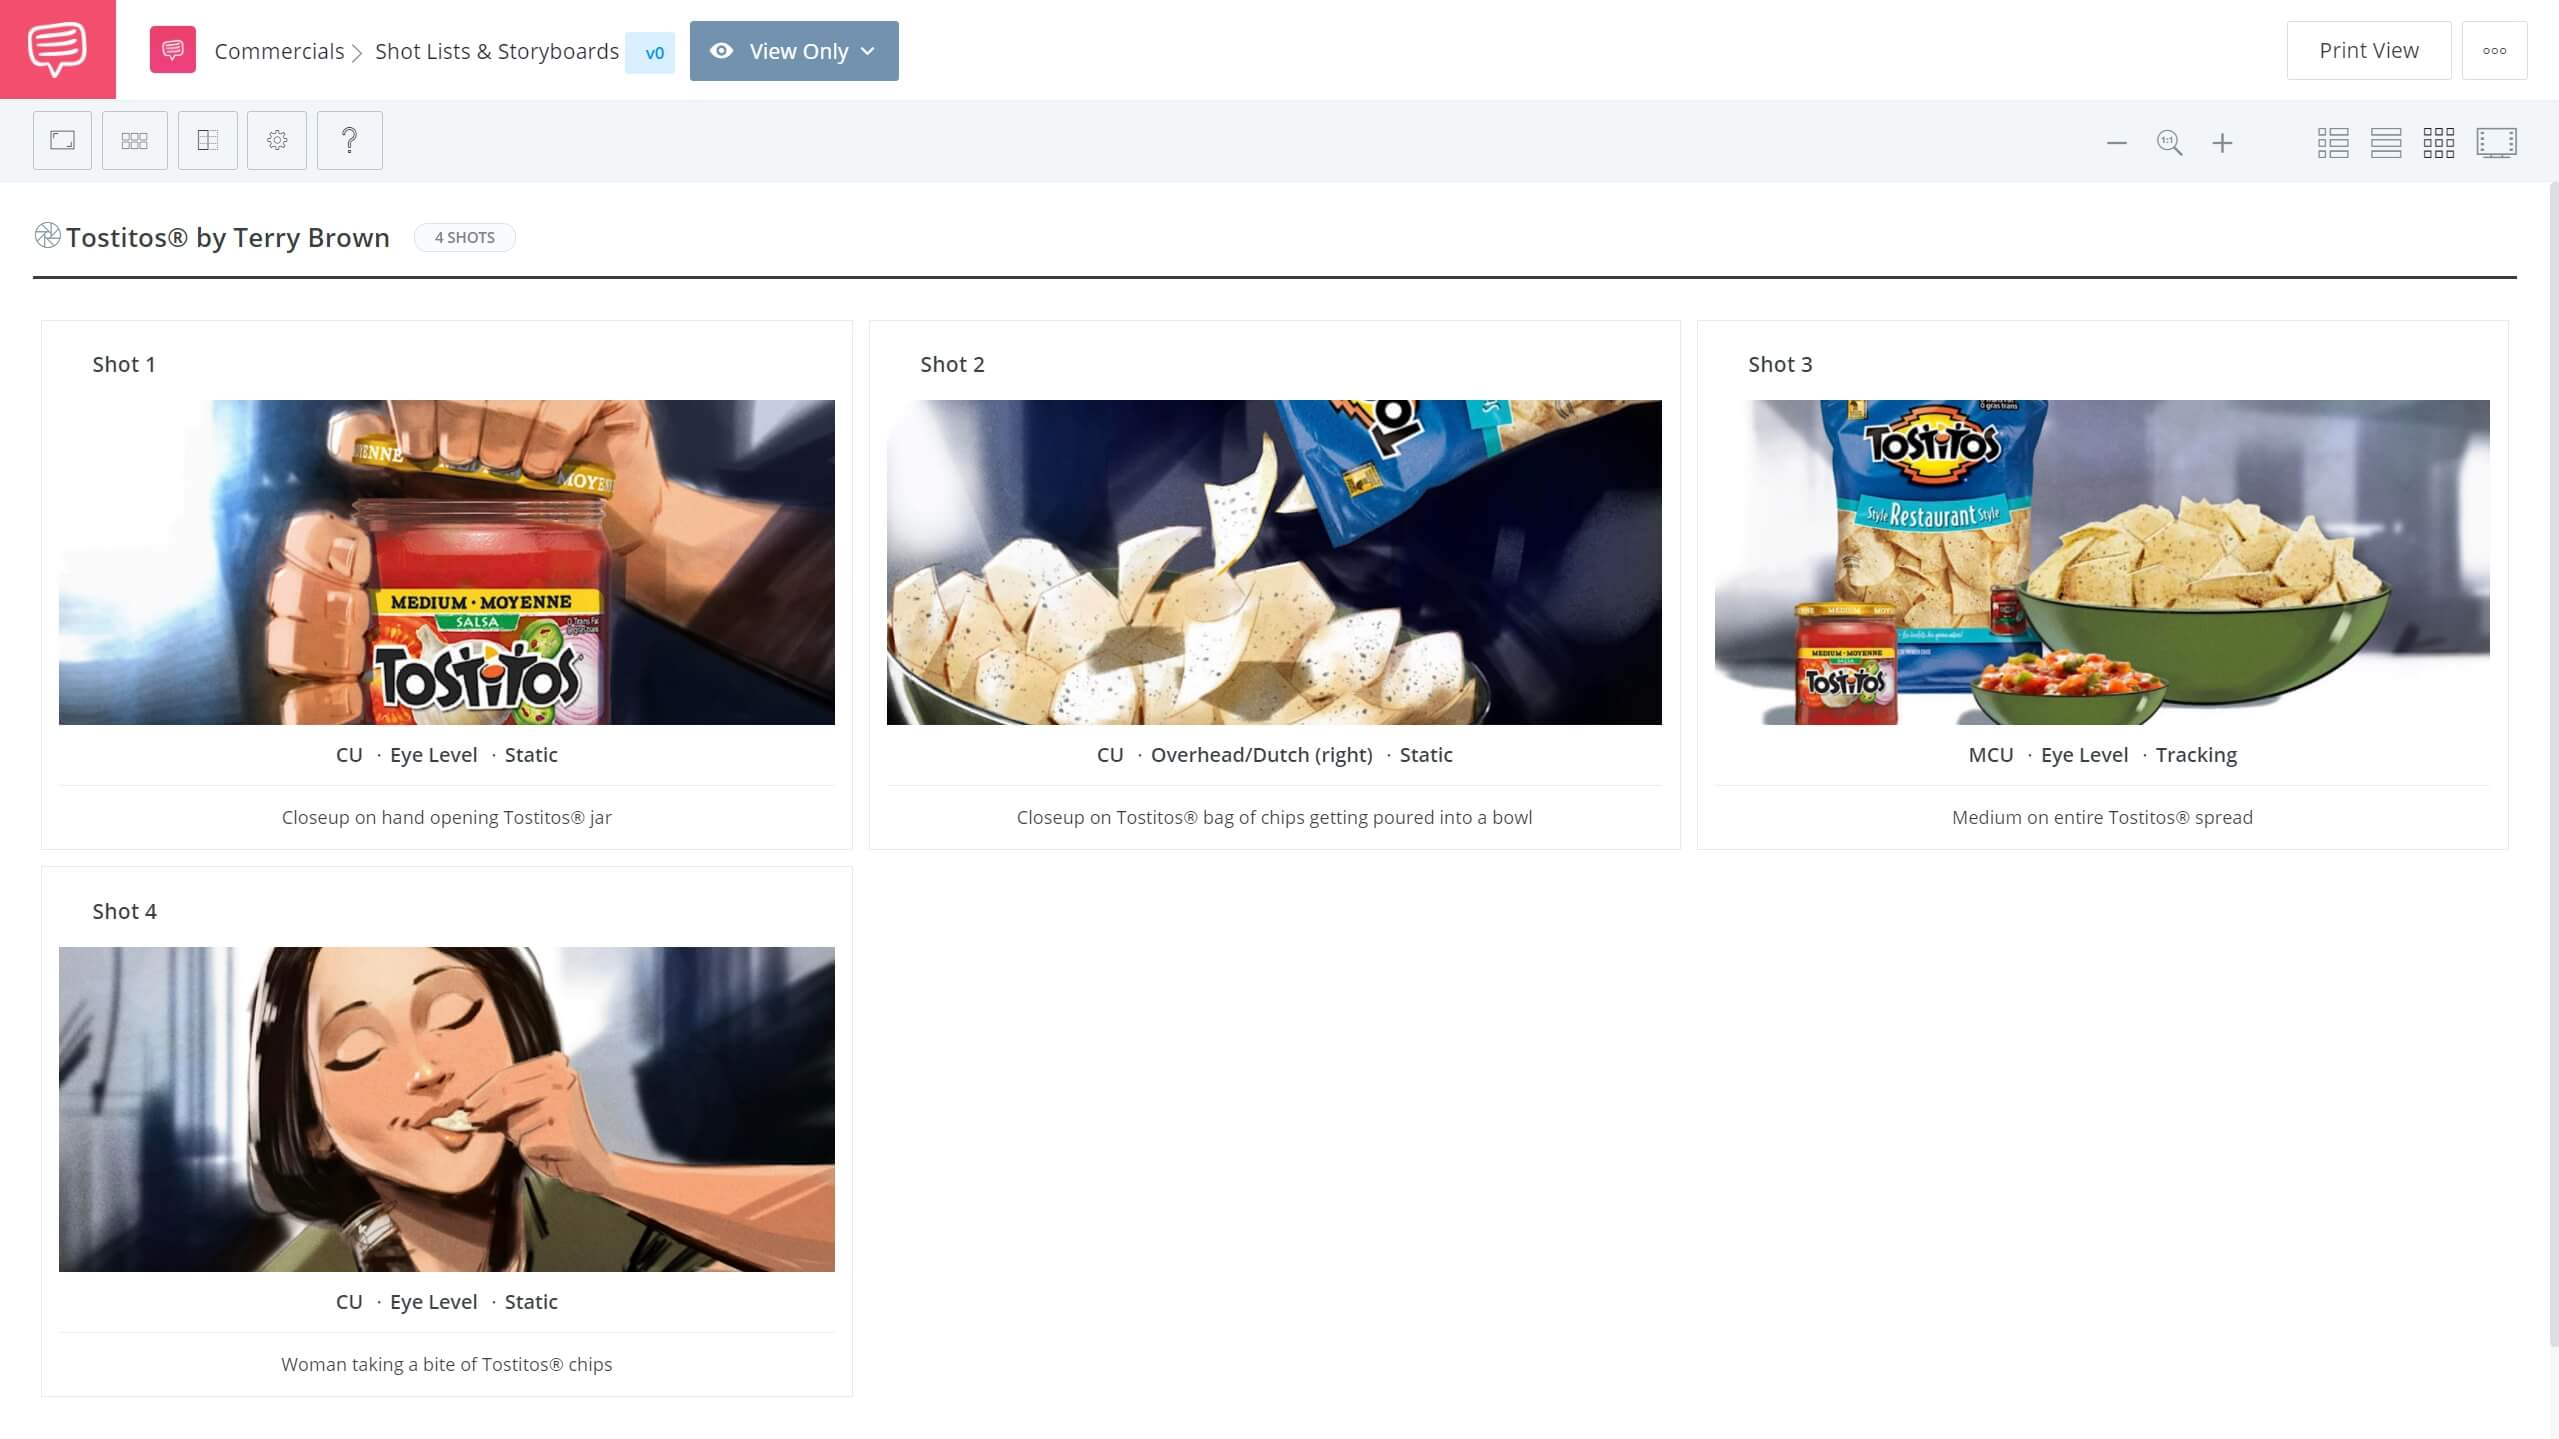 How To Make A YouTube Video Storyboard Example StudioBinder Shot Listing Software